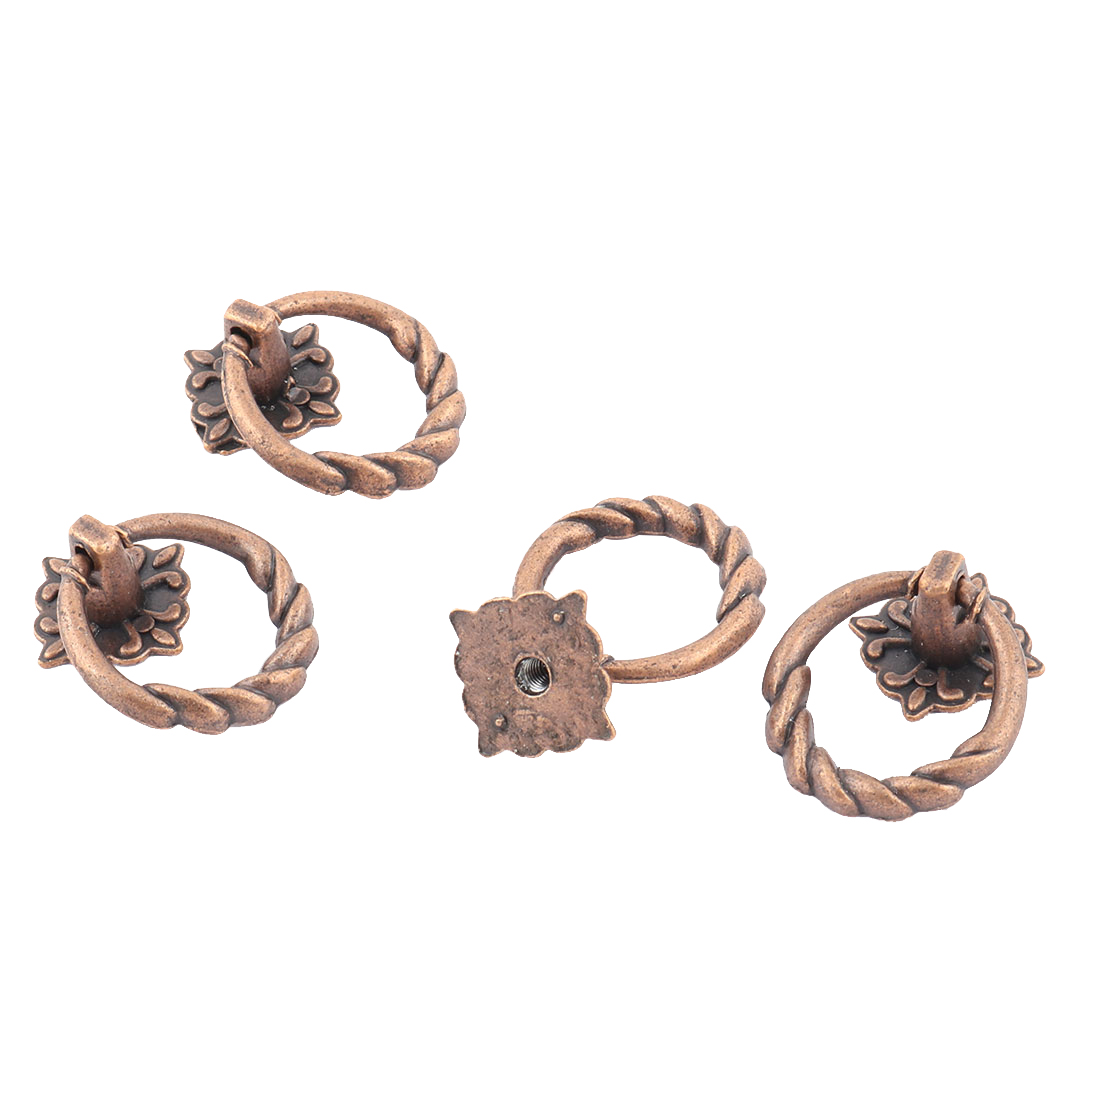 Cabinet Drawer Dresser Metal Square Base Ring Pull Handle Knob Copper Tone 4 PCS